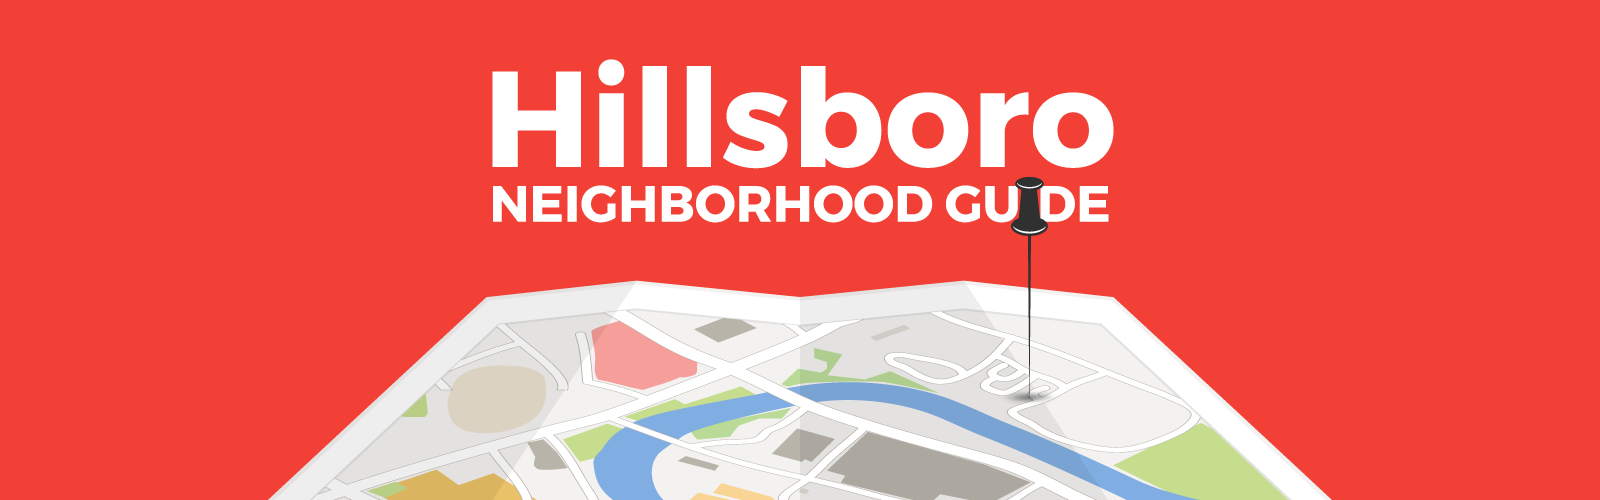 Hillsboro Neighborhood Guide